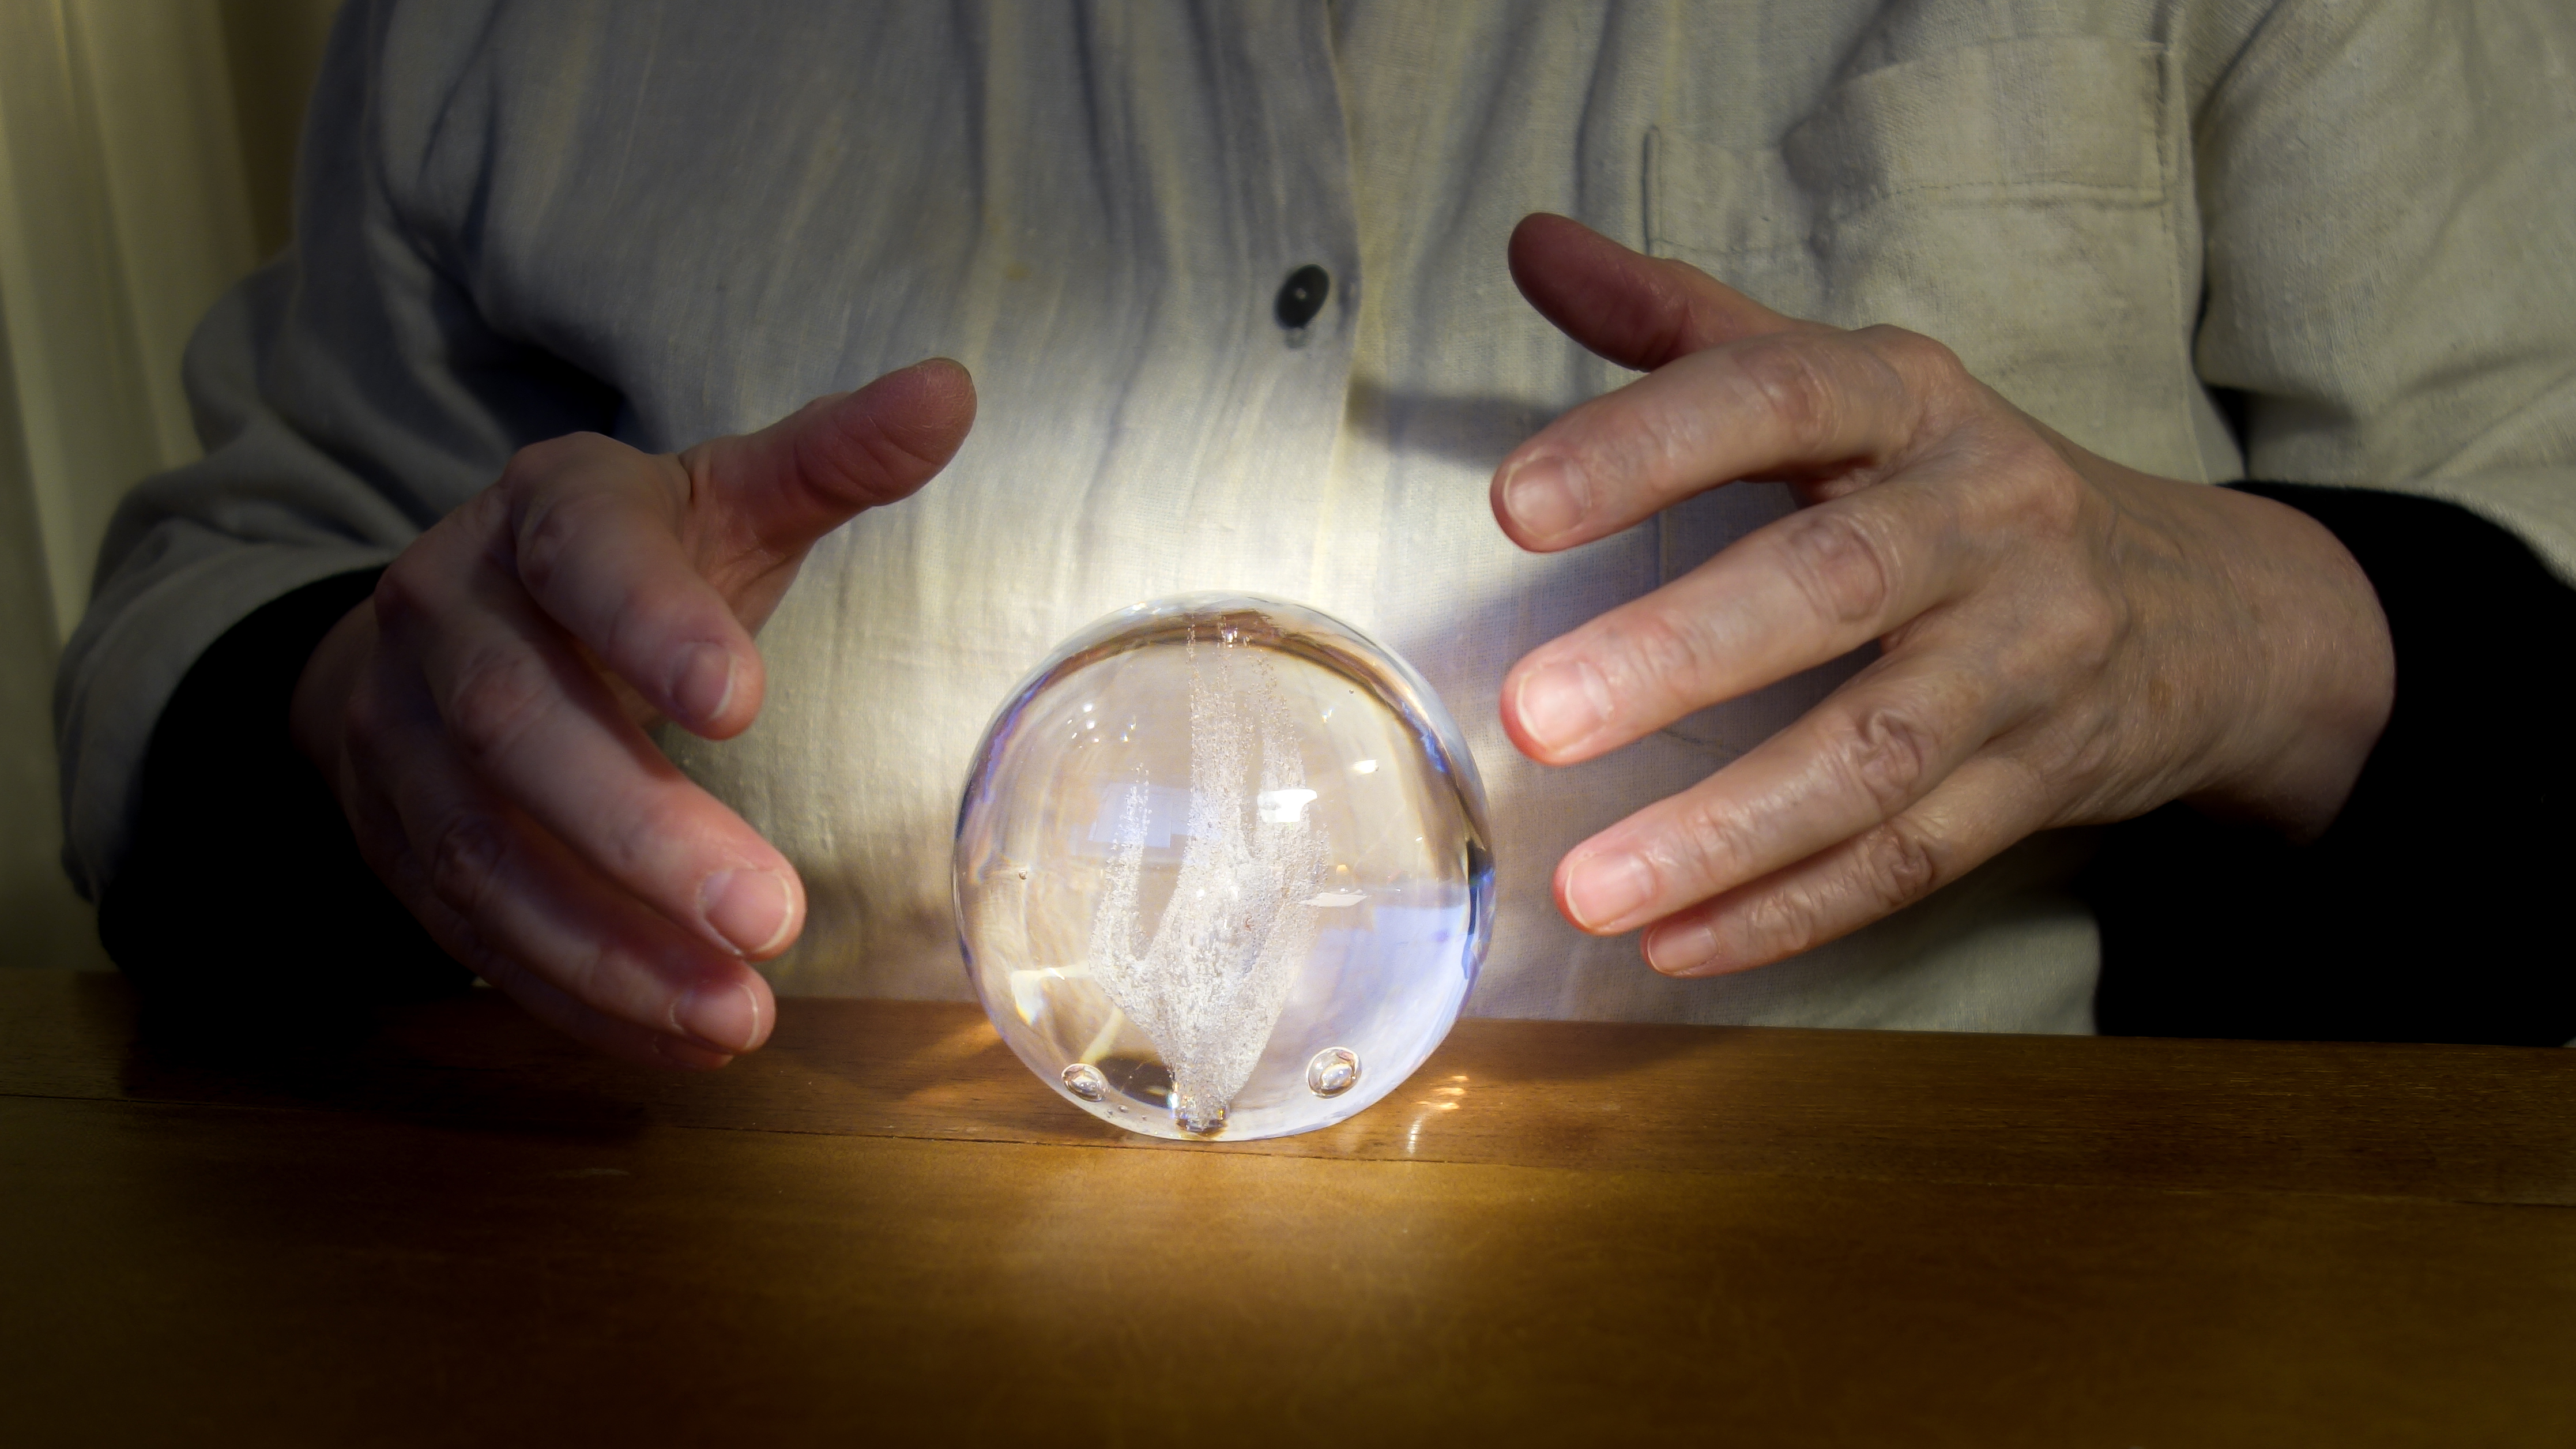 File:Asking the crystal orb.jpg - Wikimedia Commons